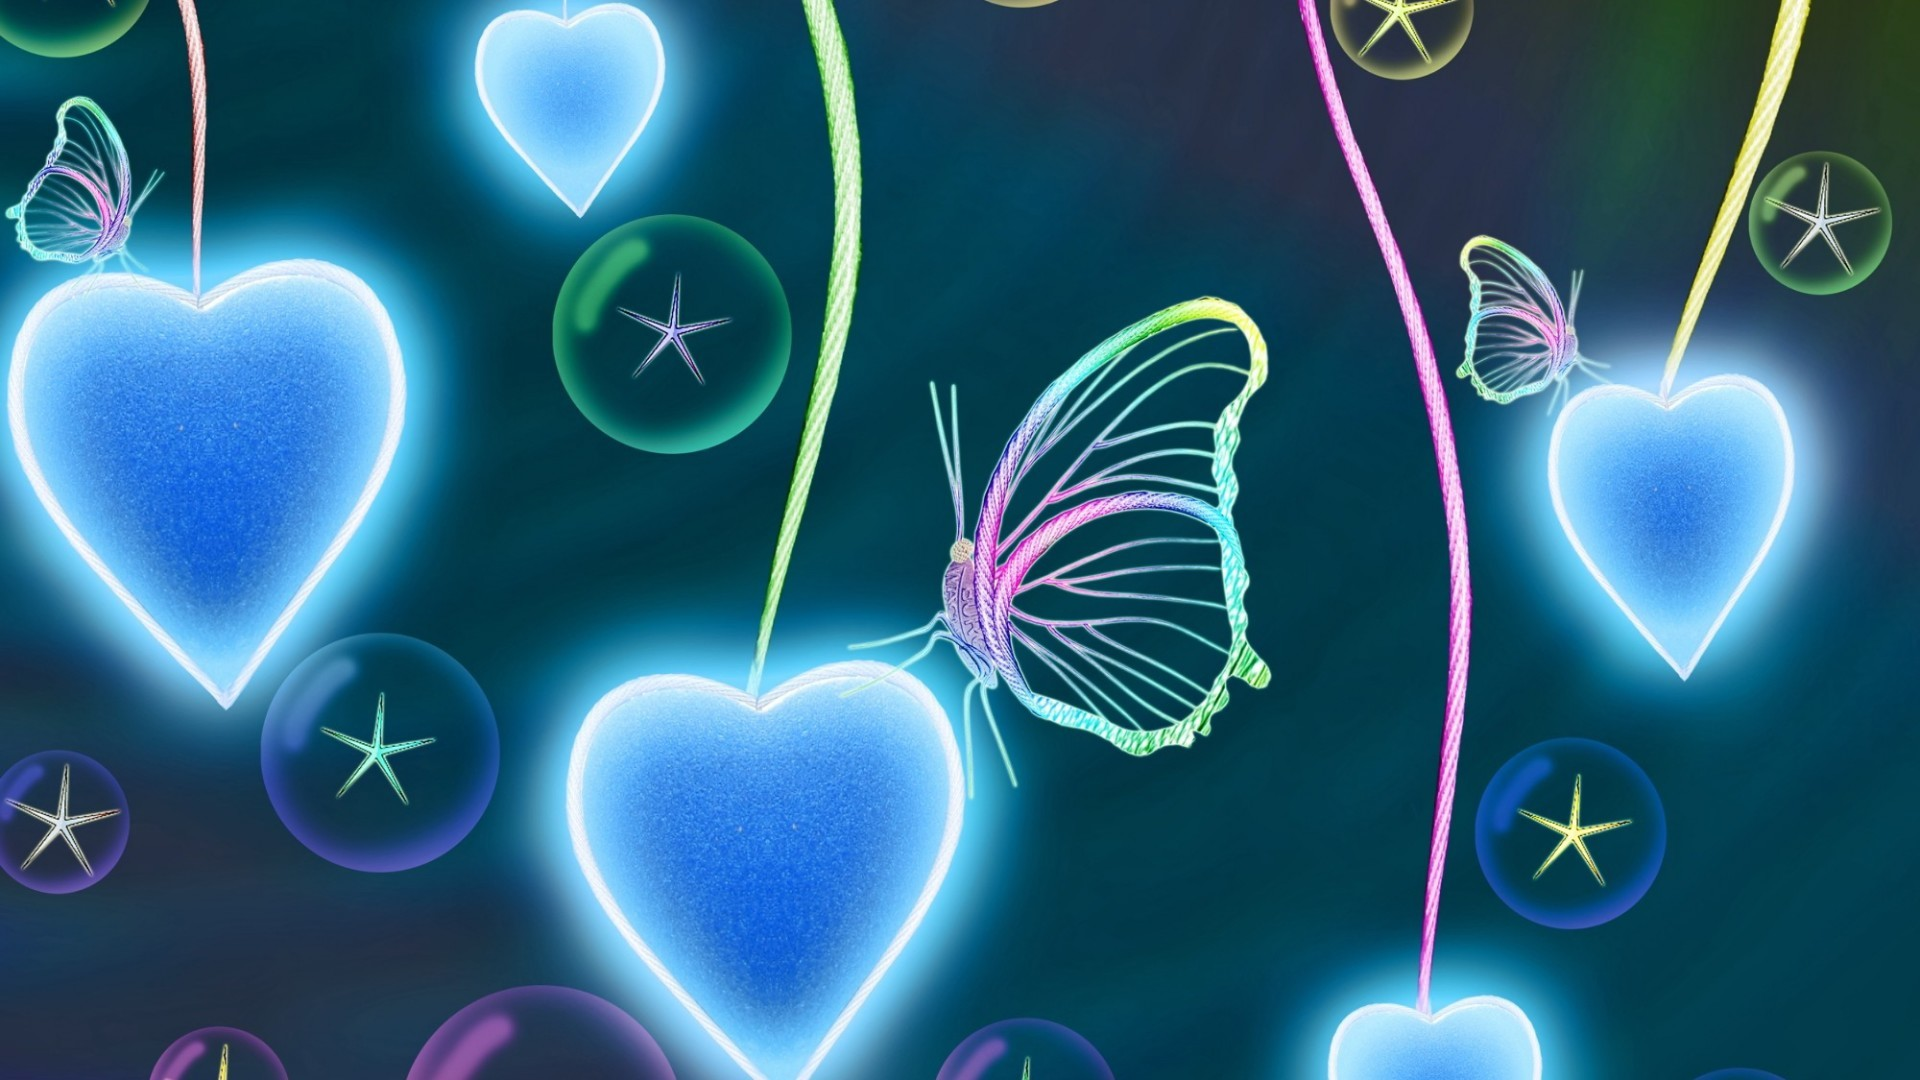 Res: 1920x1080, Abstract Butterfly Art #Image